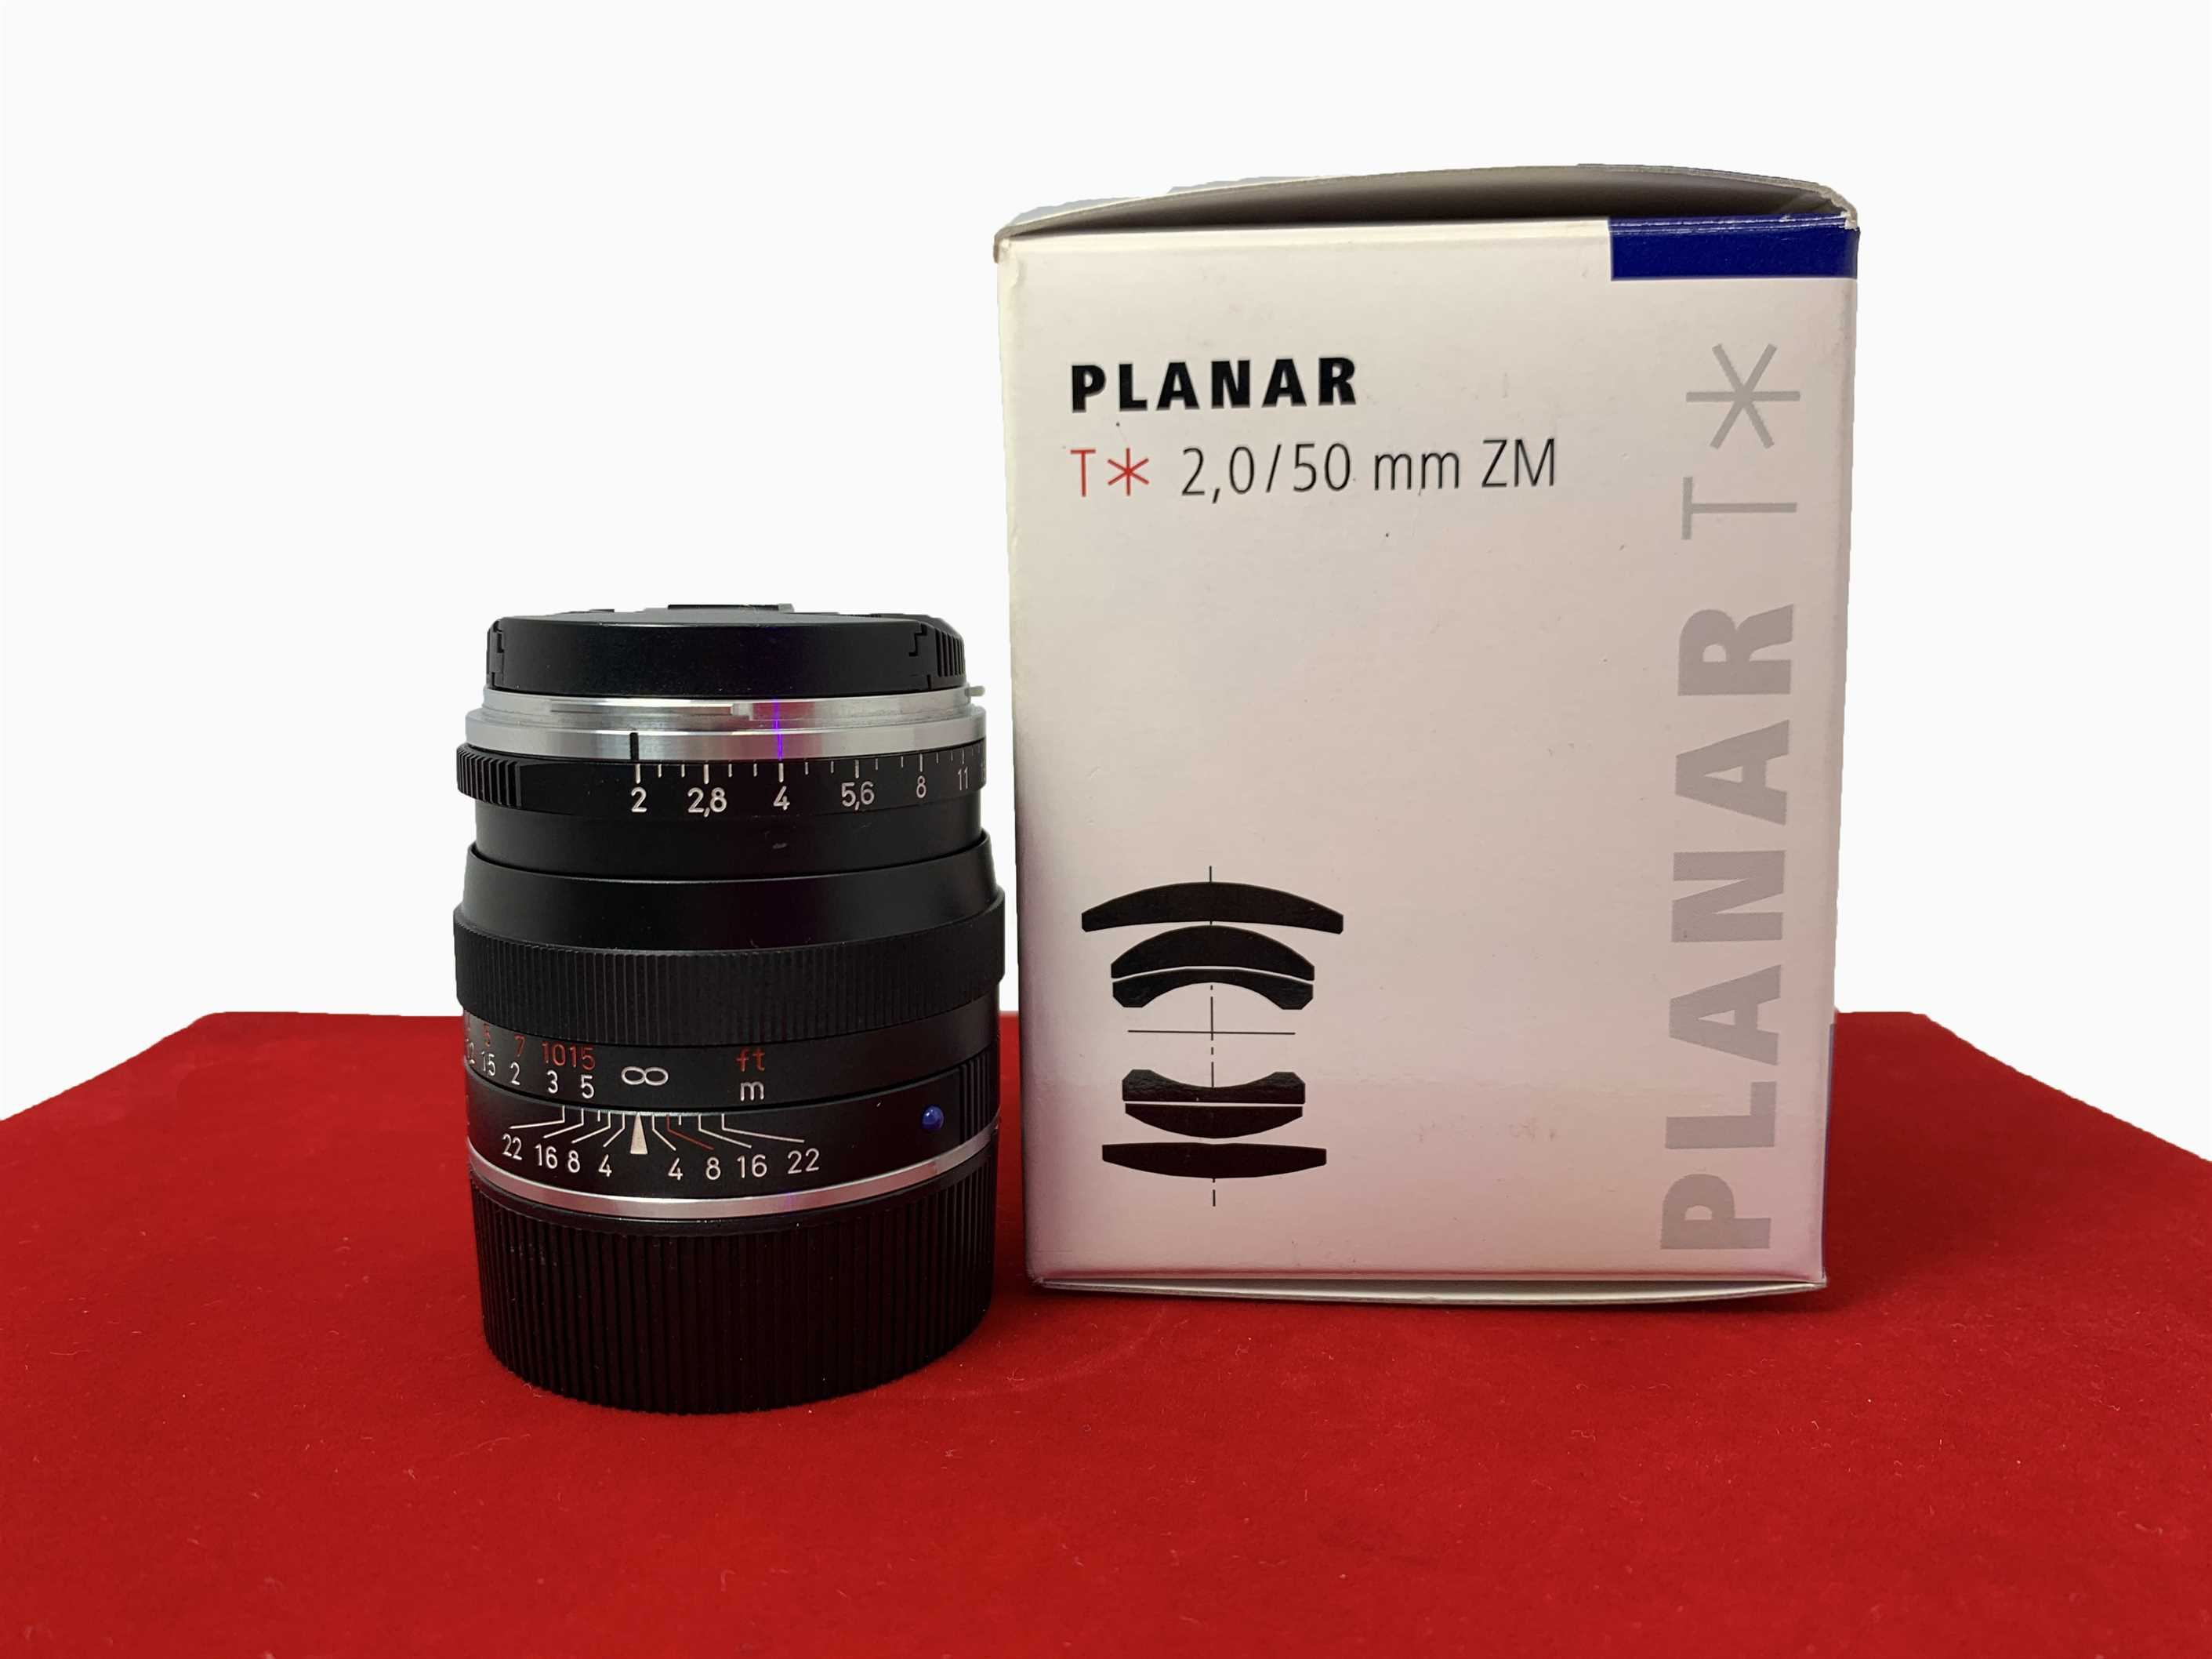 [USED-PJ33] Zeiss 50MM F2 Plannar T* ZM (Leica Mount) (Black),80% Like New Condition (S/N:15842664)